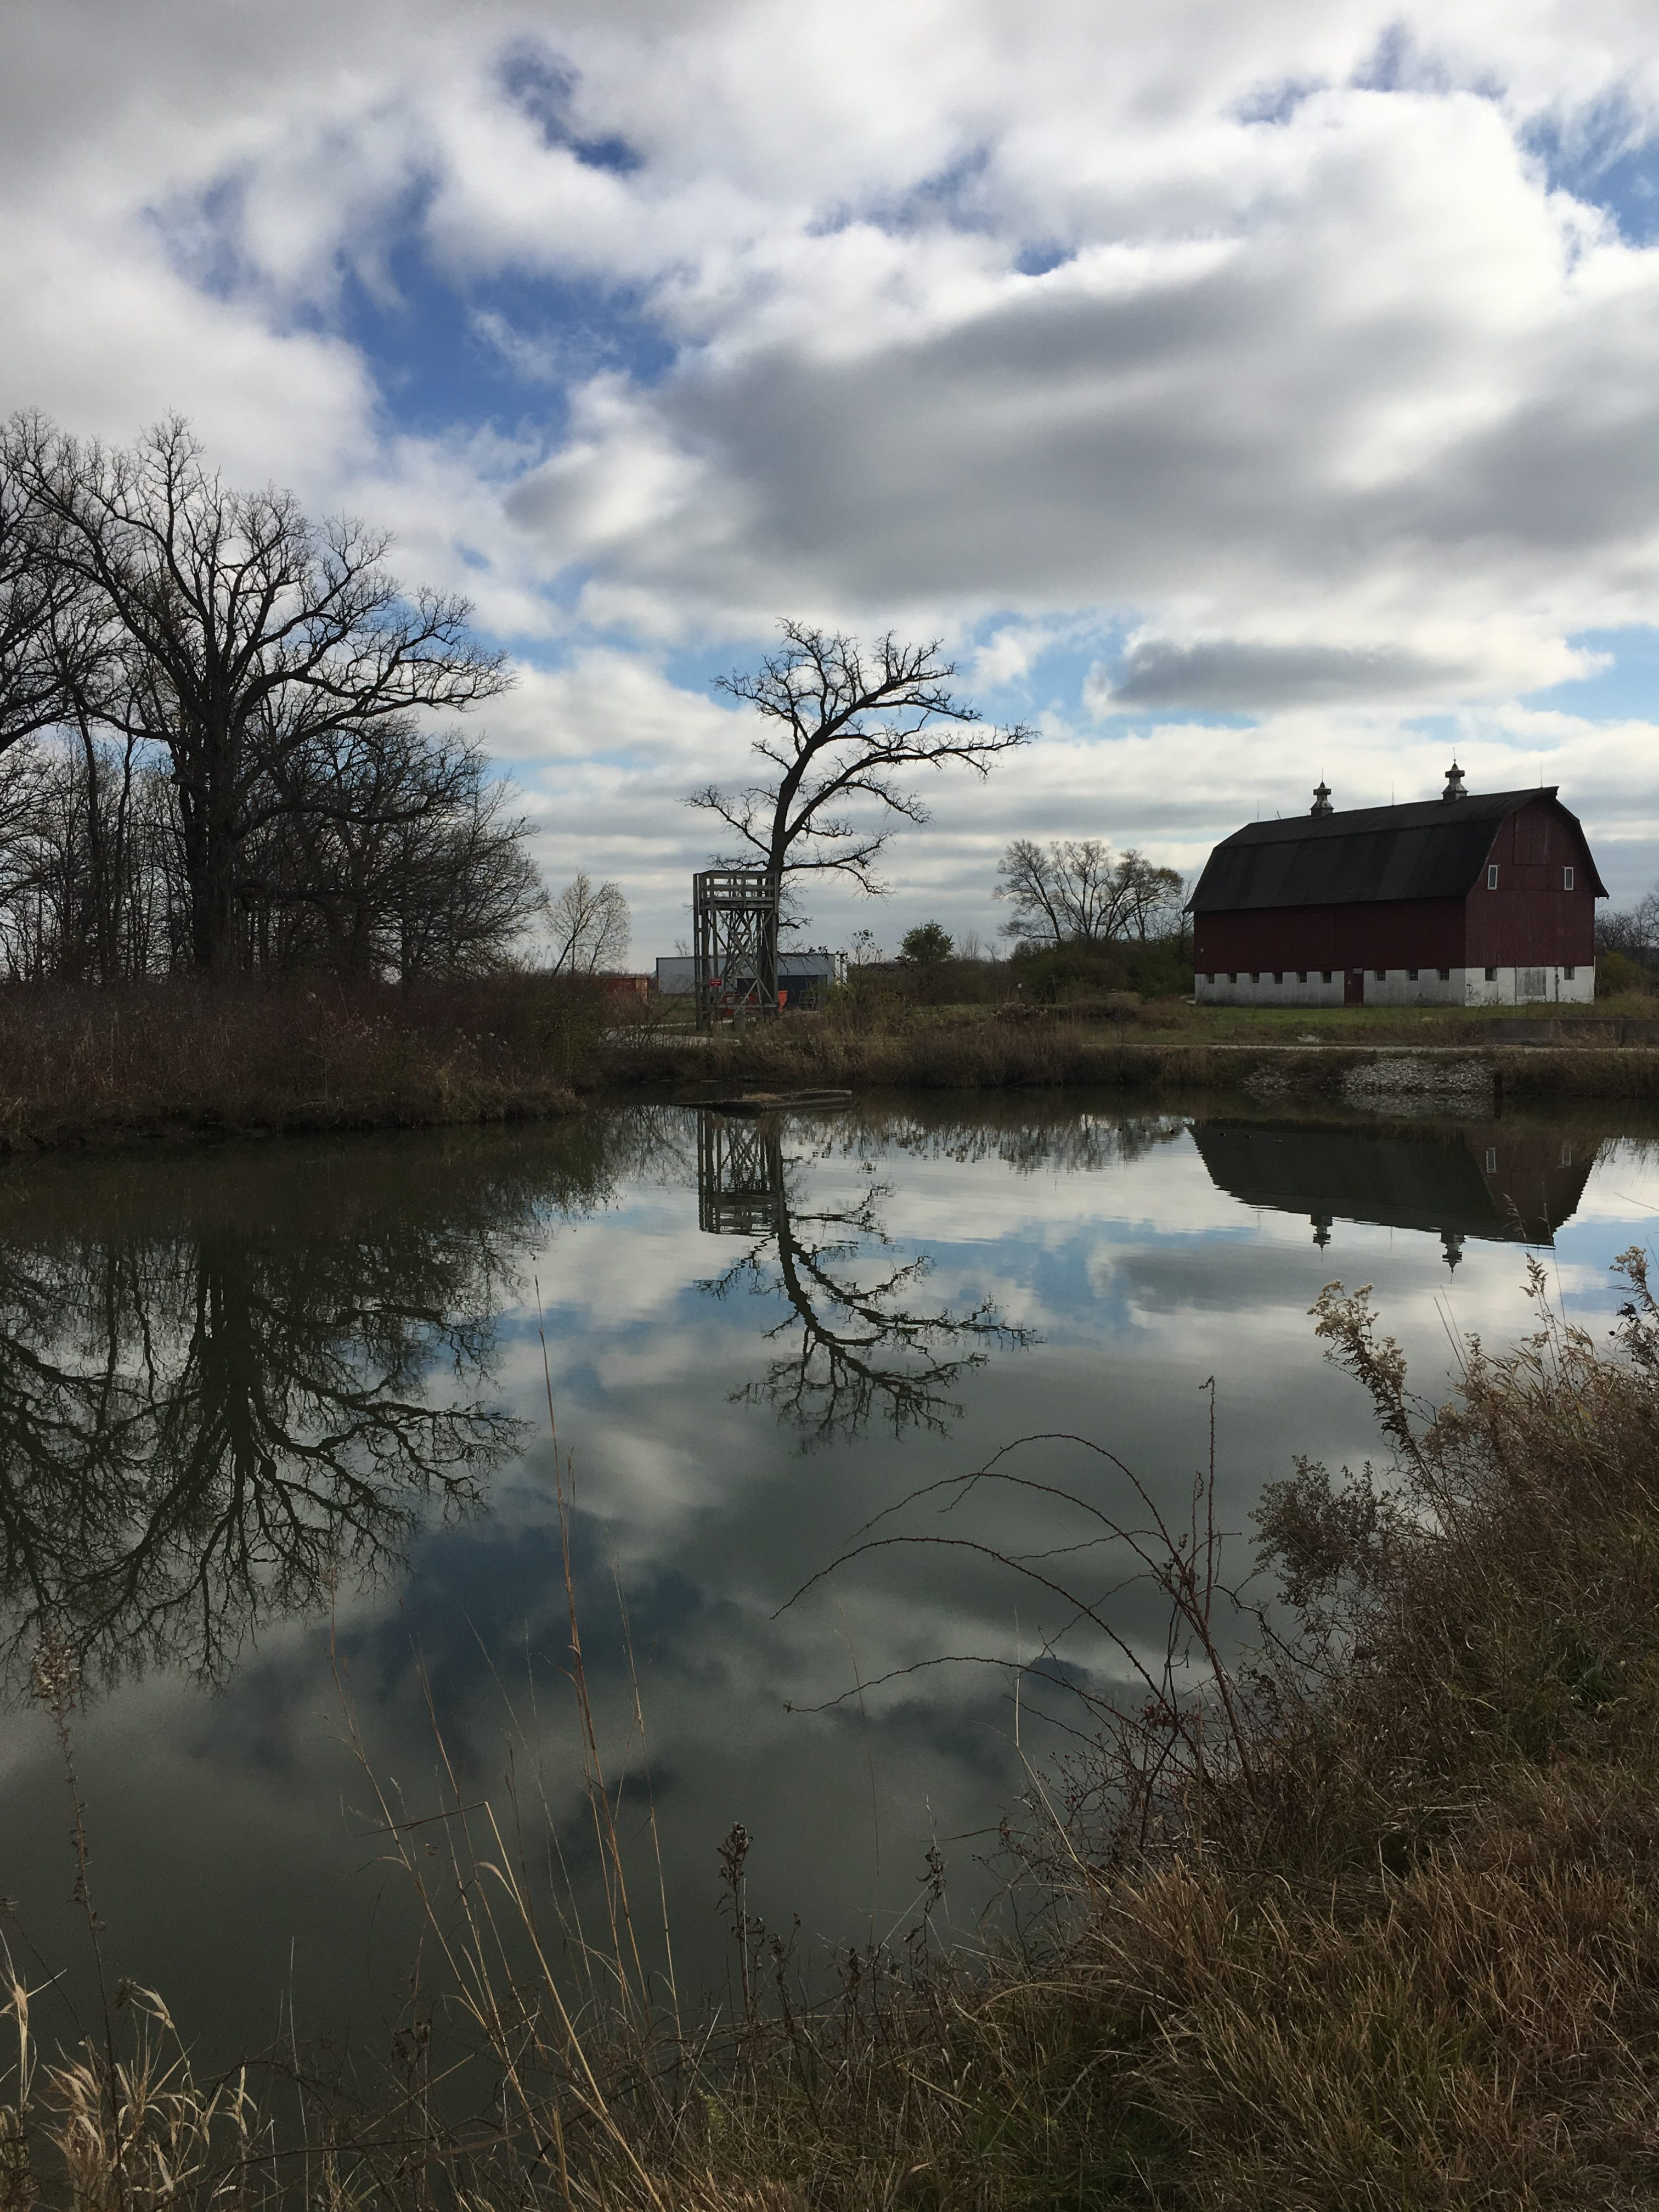 Nature presents some fantastic scenery on Main Ring Road. nature, landscape, cloud, sky, building, tree, water Photo: Christine Ader